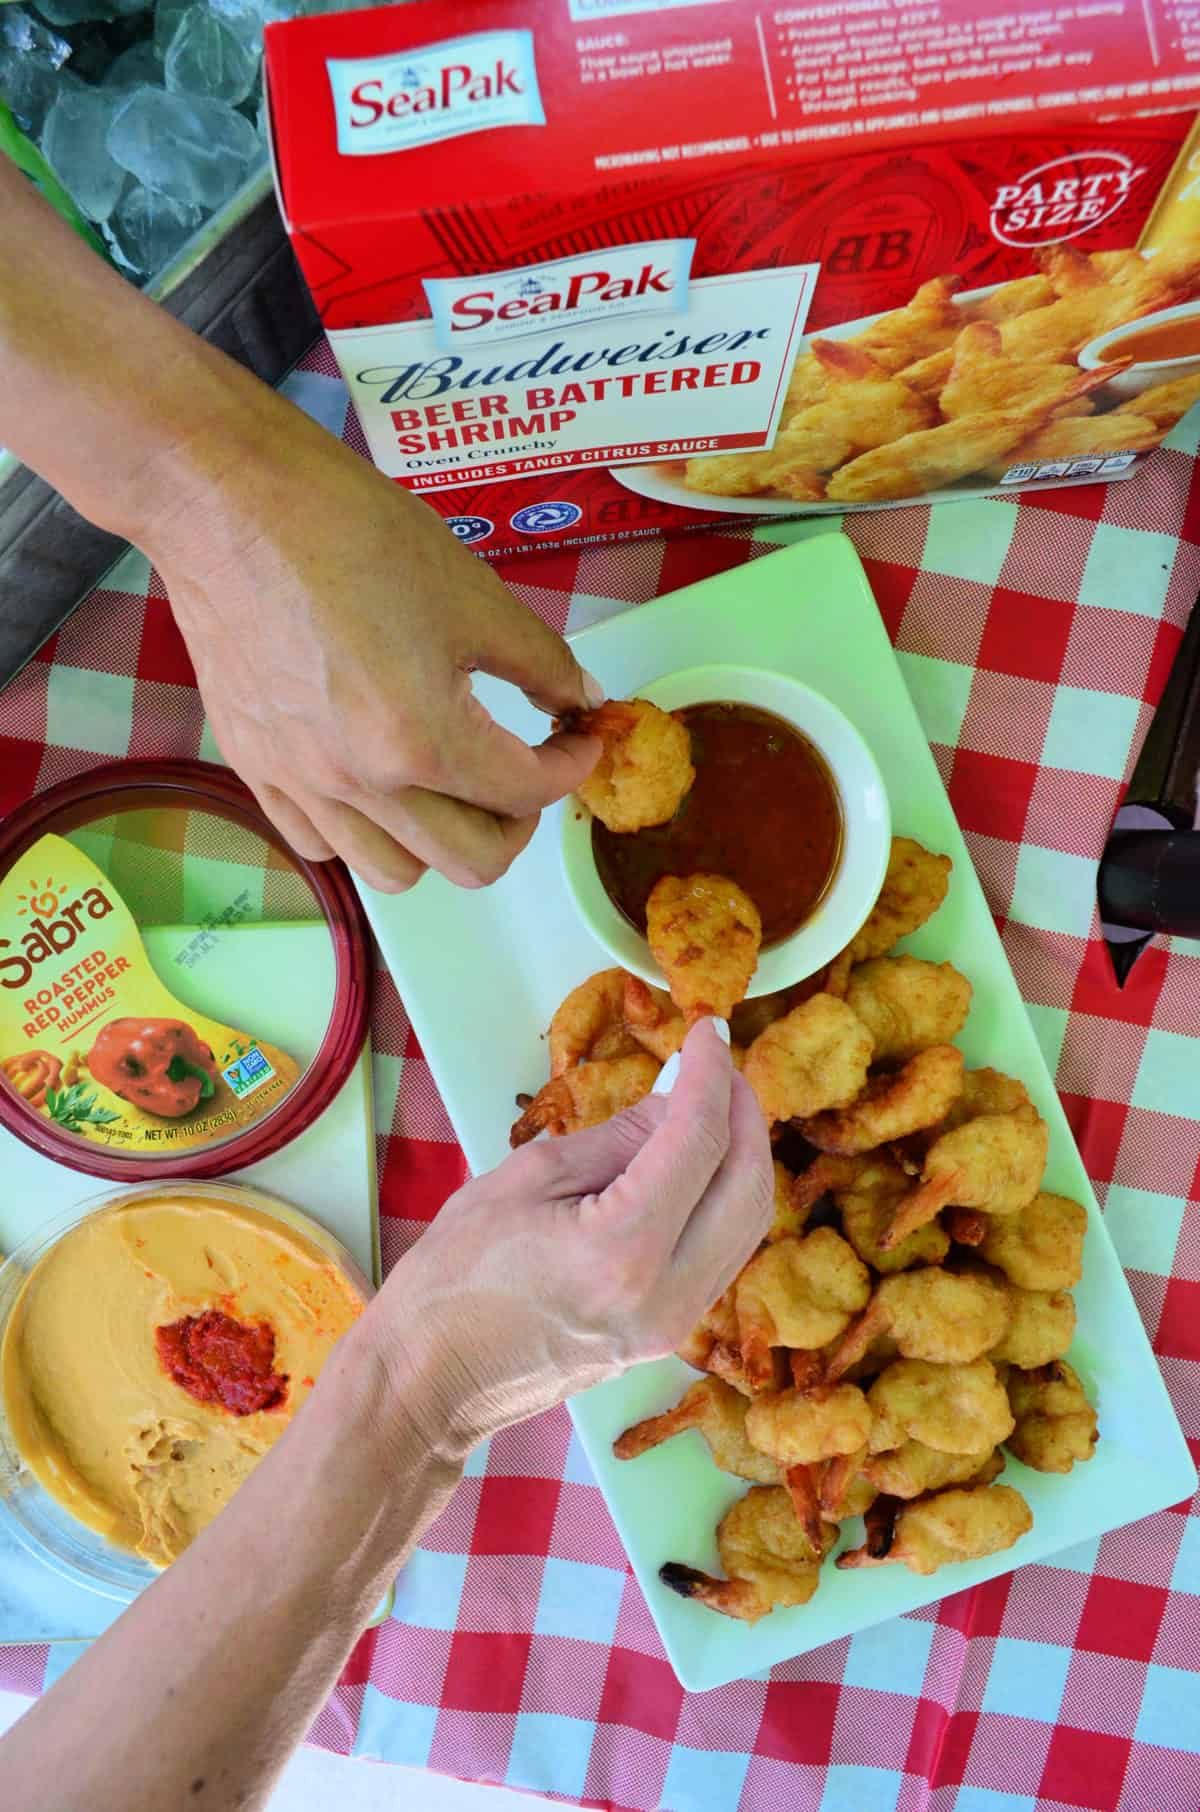 top view hands dipping SeaPak Budweiser Beer Battered shrimp from platter into sauce.